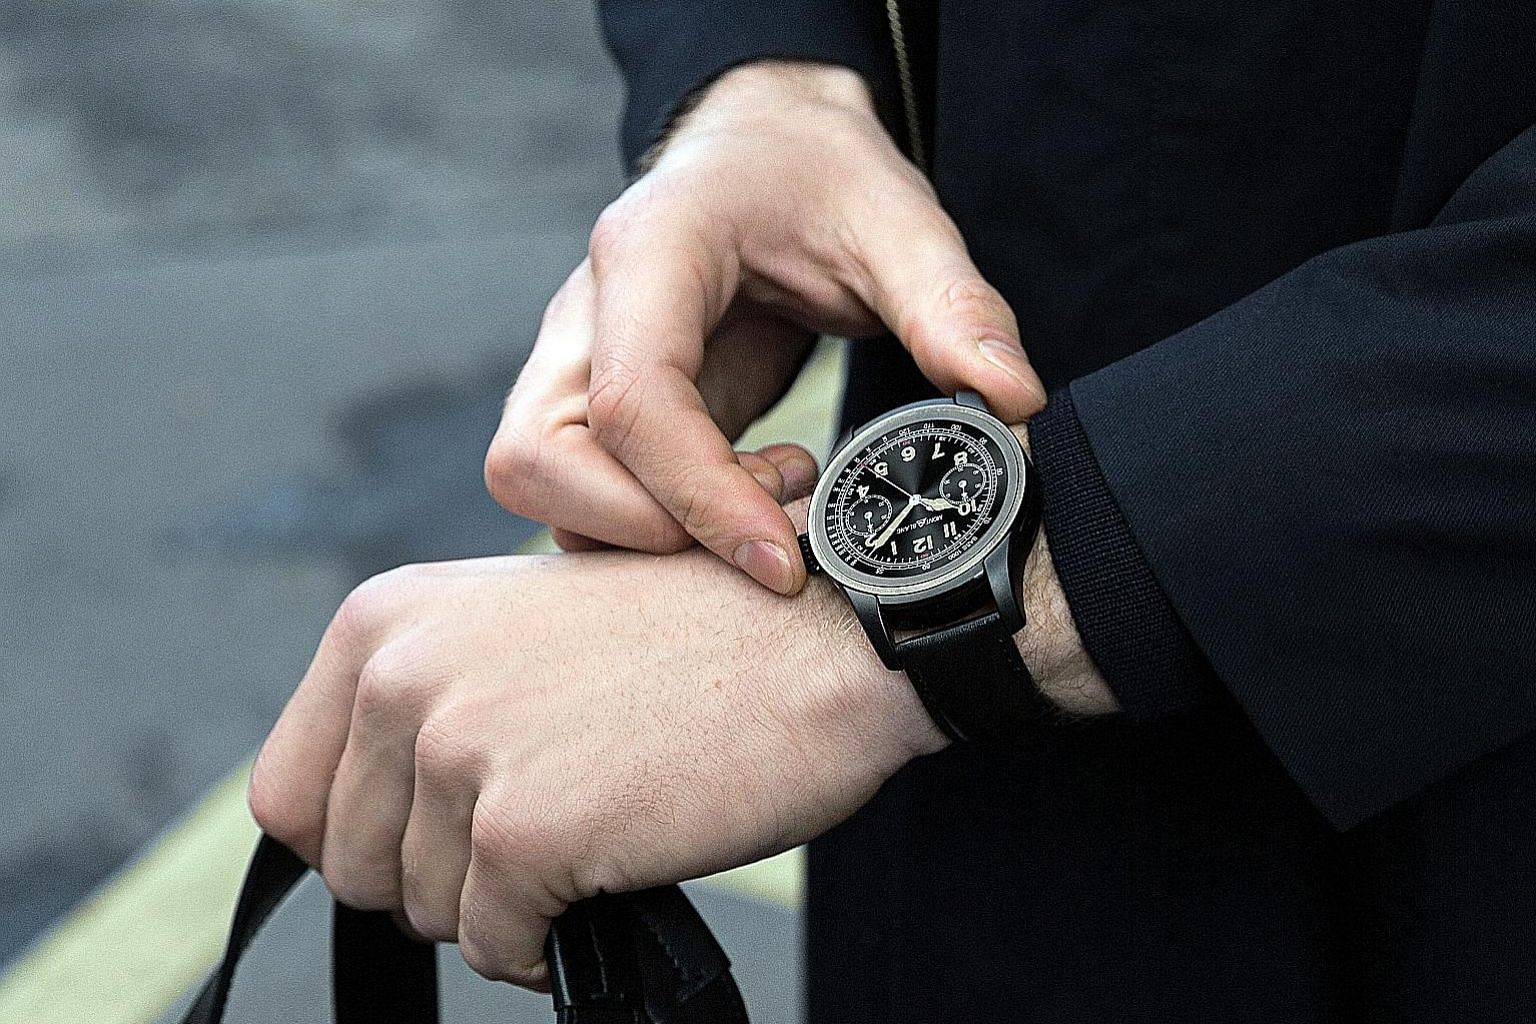 """Montblanc's Summit is an exquisitely crafted timepiece with its """"premium-ness"""" very evident the moment you strap it onto your wrist. Its 46mm-wide stainless-steel circular watch case feels as smooth as silk. The Summit is the first smartwatch to have"""